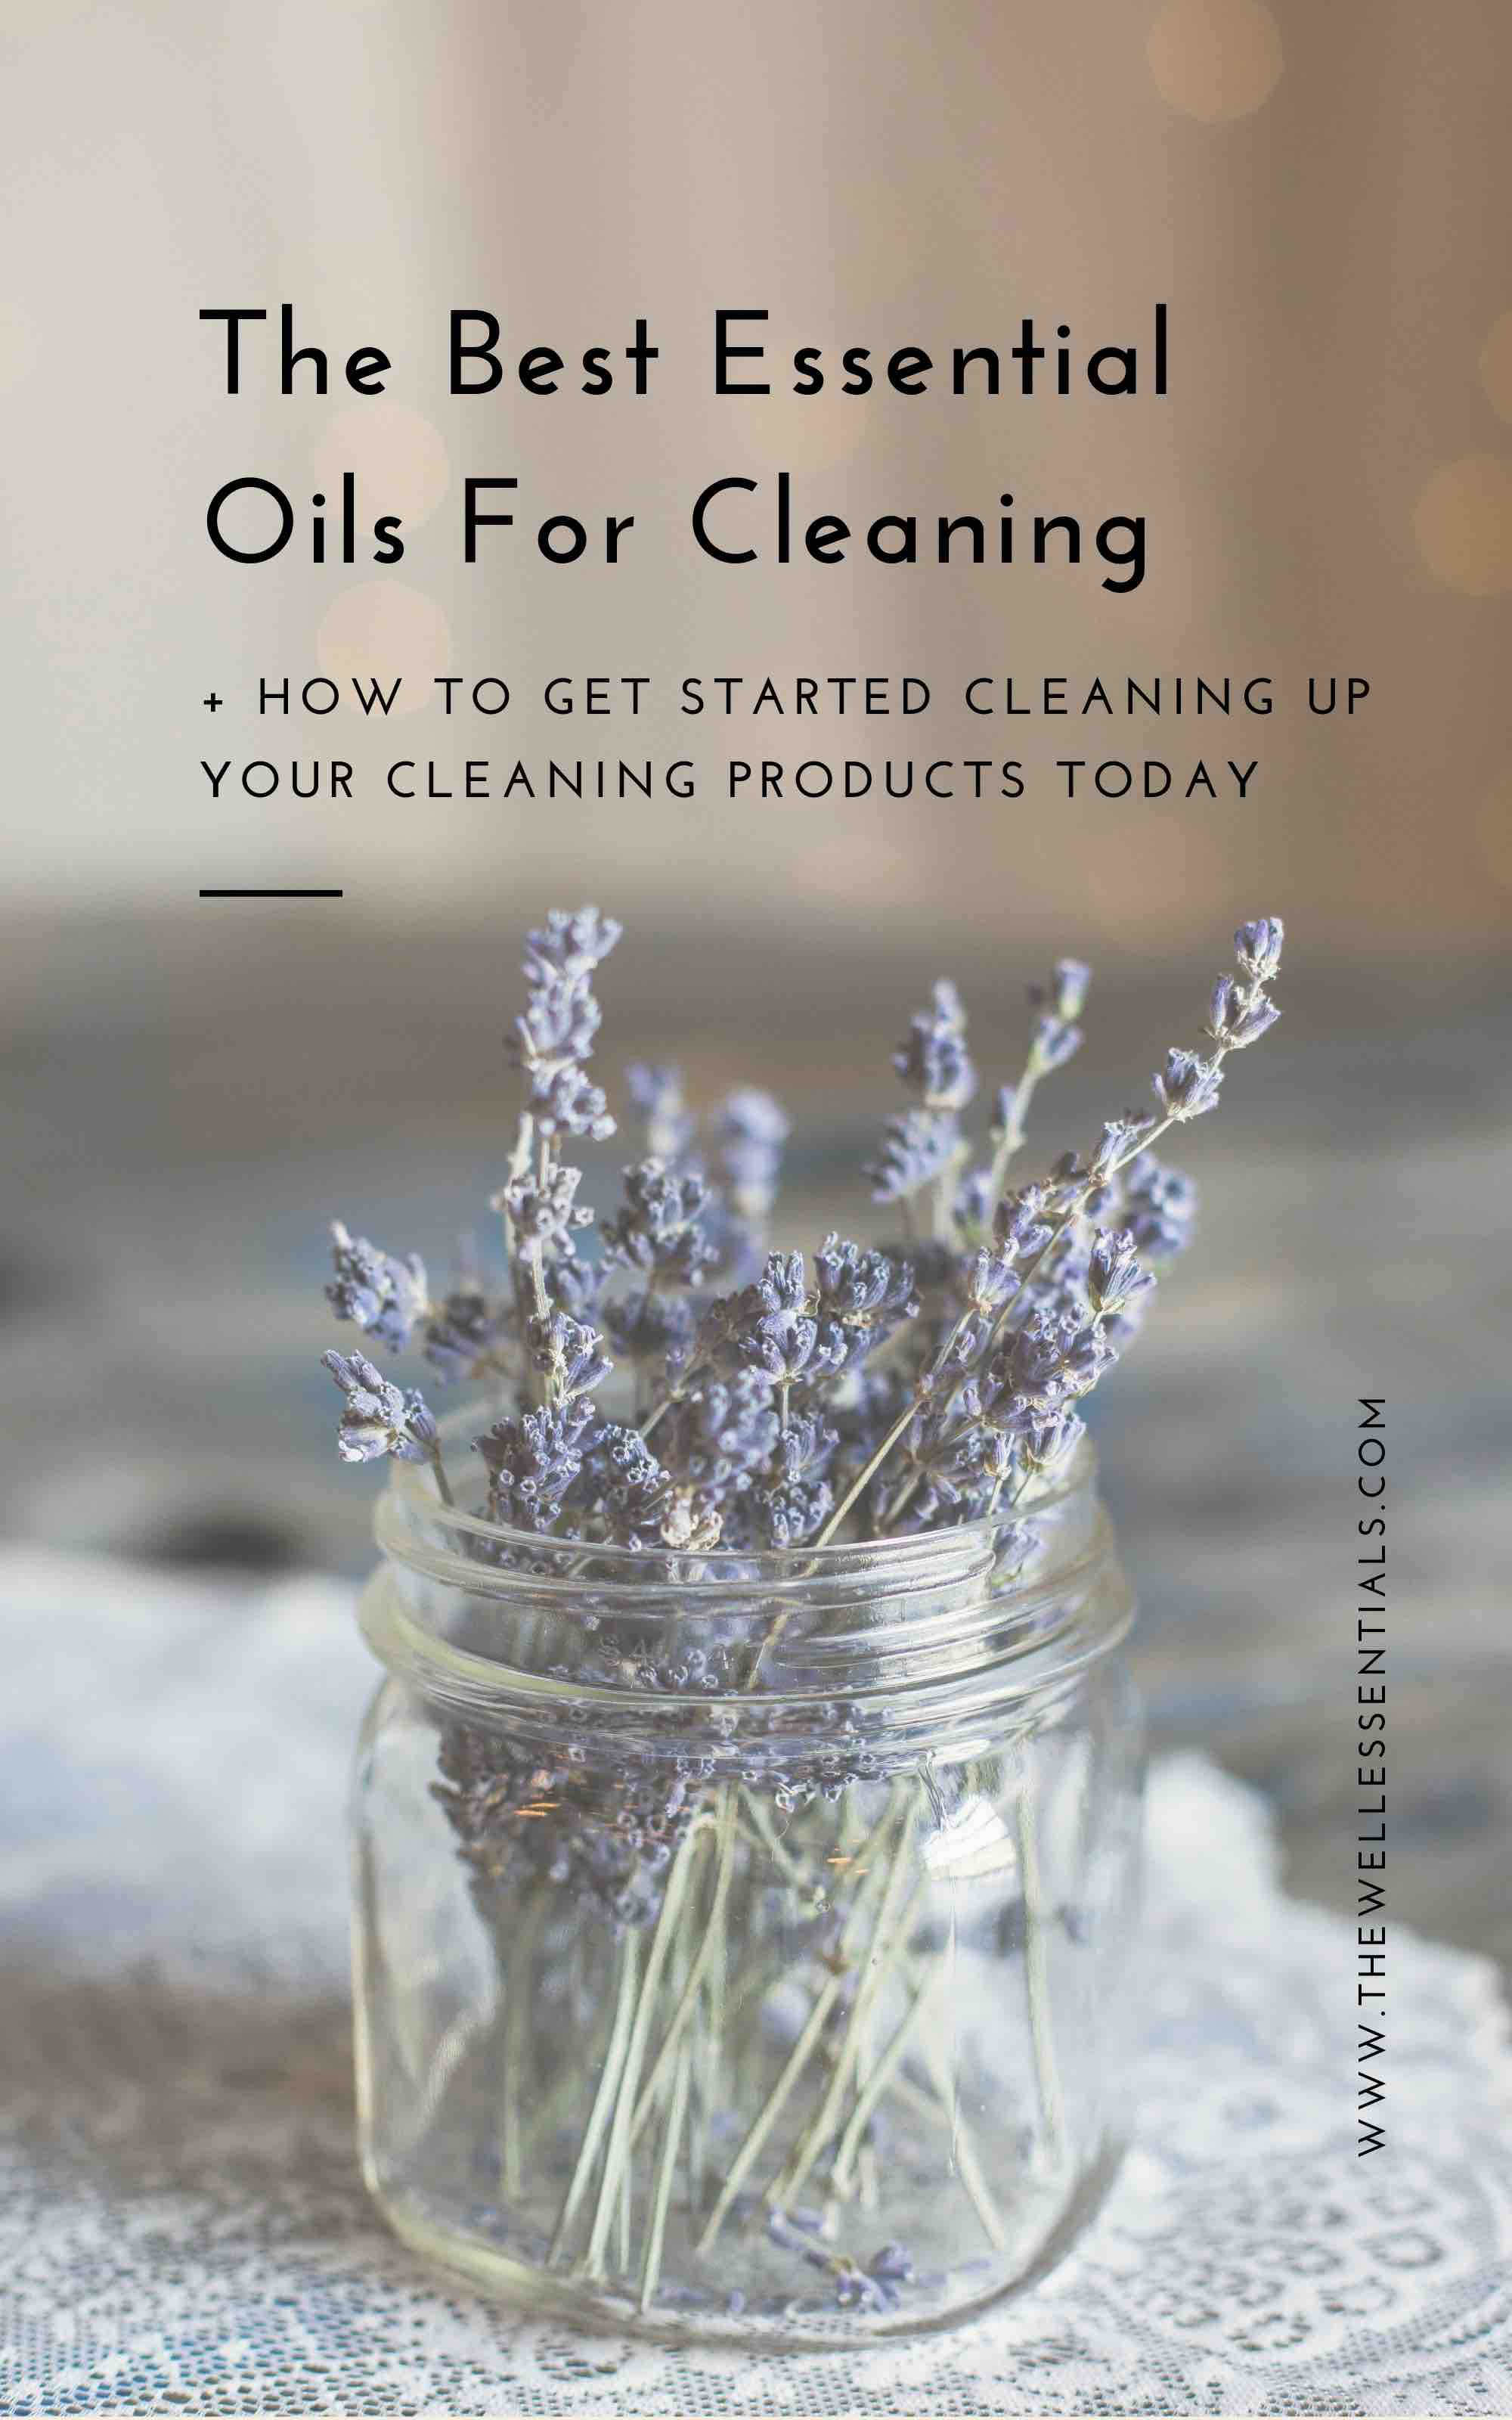 The Best Essential Oils For Cleaning: What You Need To Get Started Today